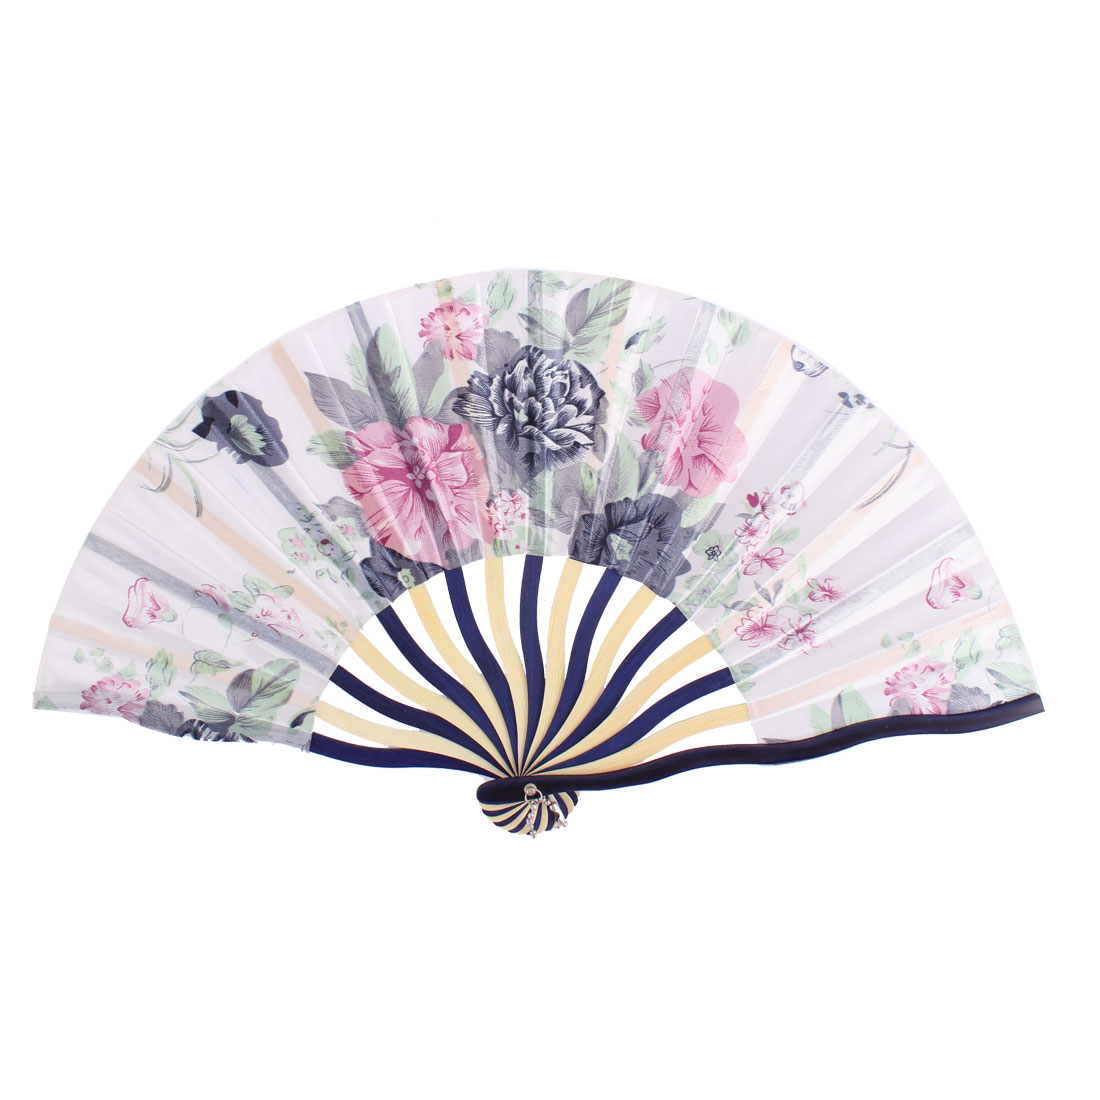 Dancer Wedding Party Floral Printed Nylon Bamboo Frame Portable Handheld Folding Fan Art Decoration